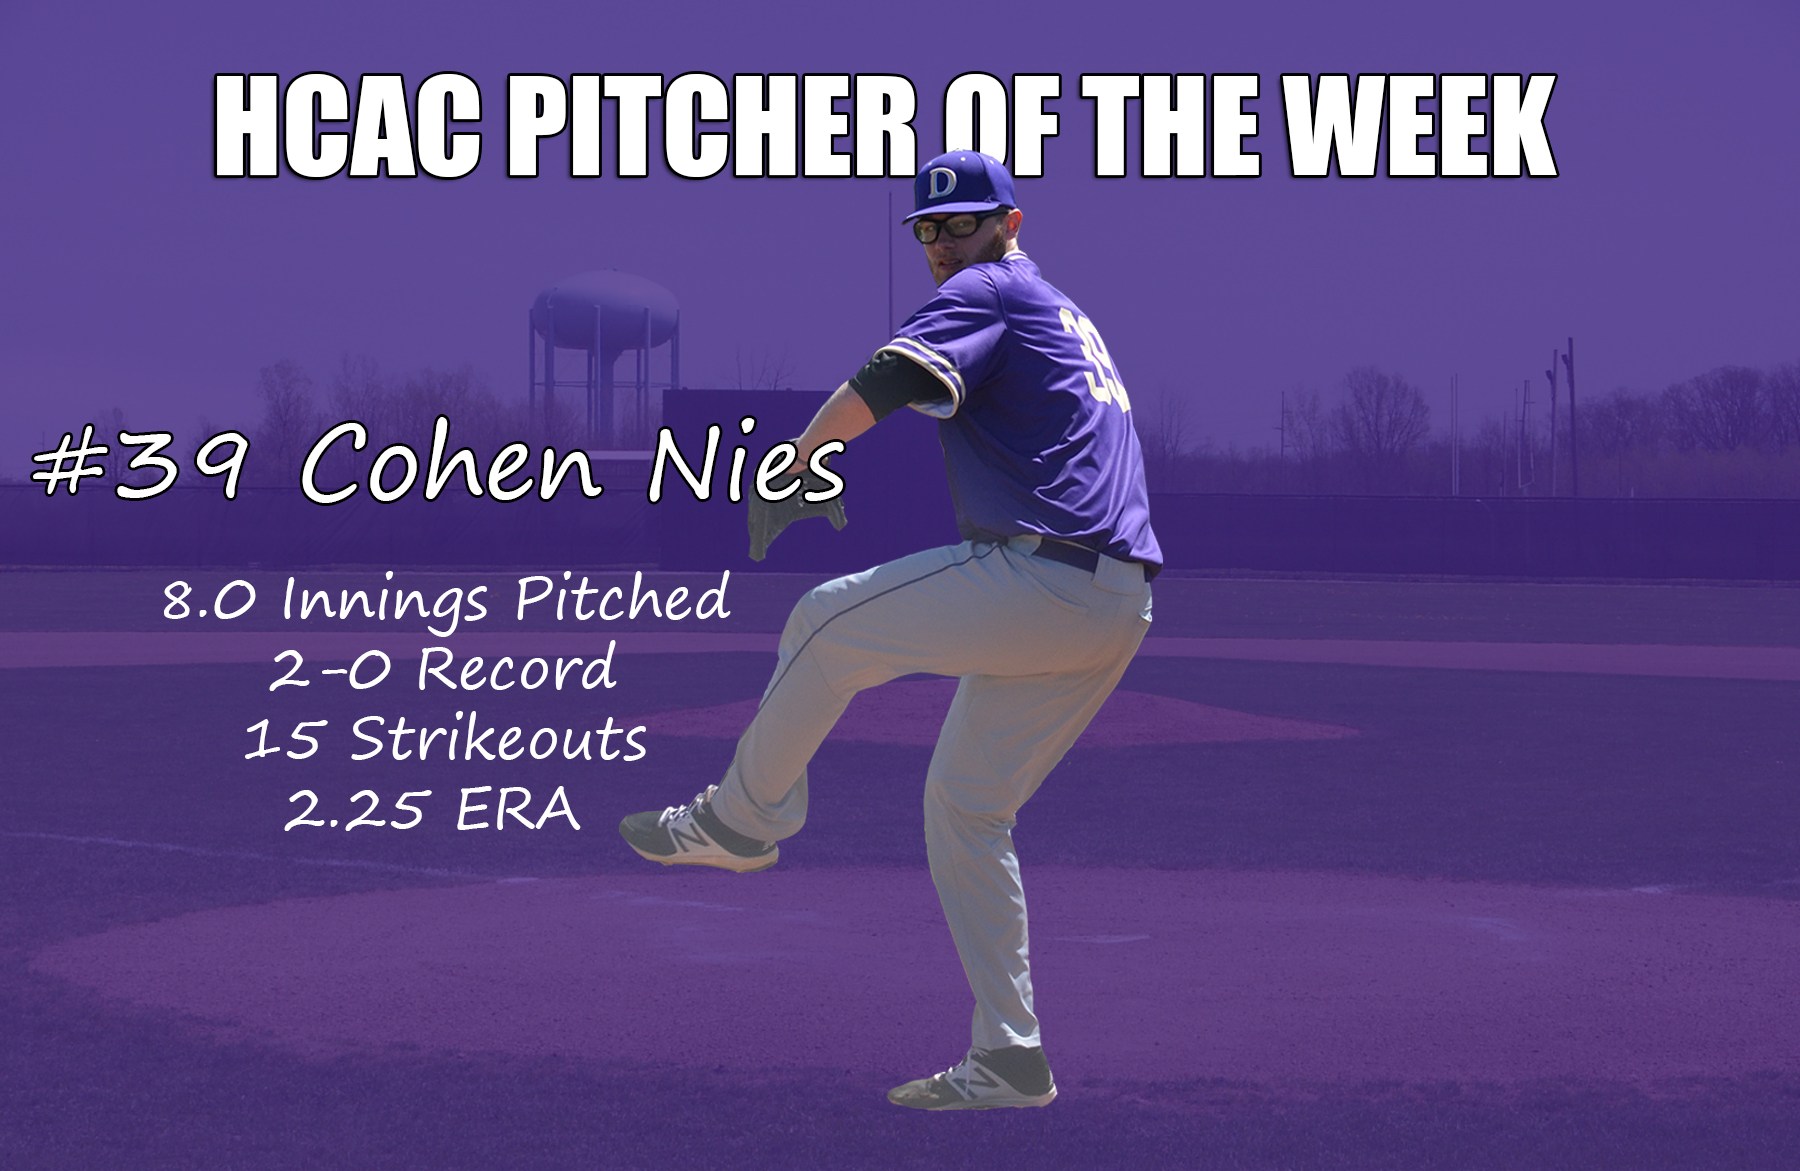 Nies Named HCAC Pitcher of the Week